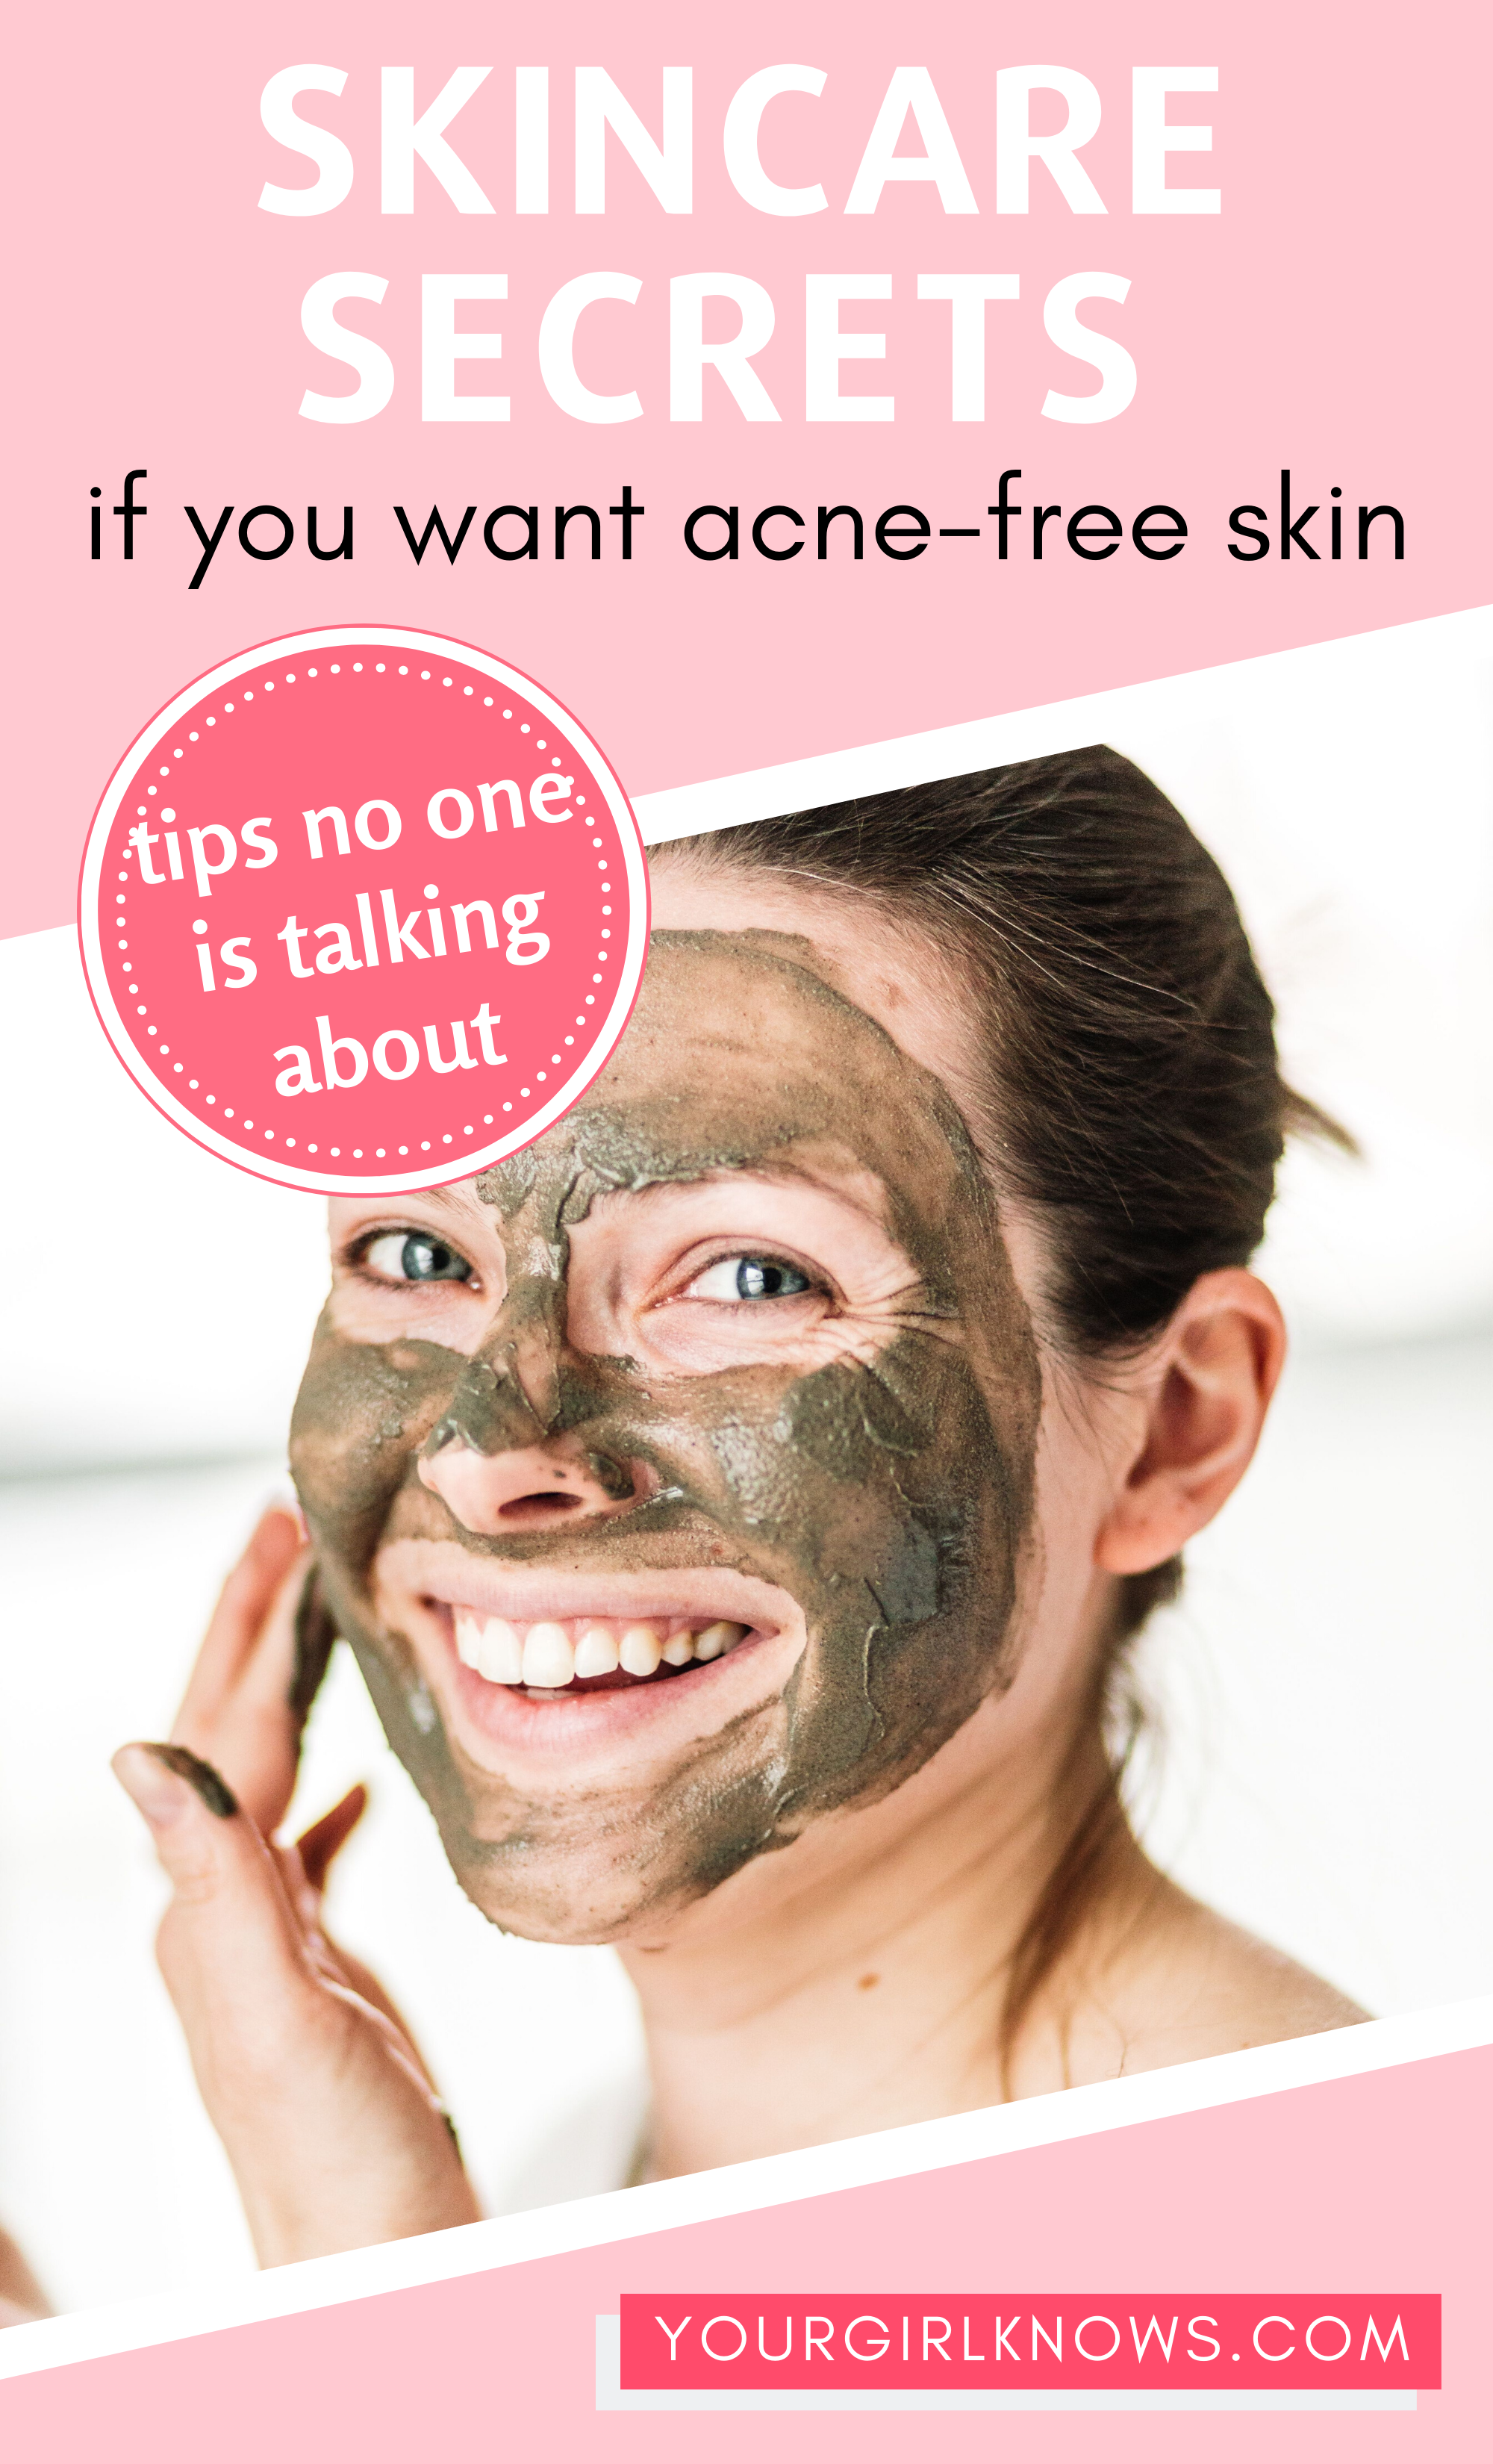 23 Best Skincare Tips Beauty Secrets You Need To Know For Clear Skin In 2020 Skin Care Face Products Skincare Skin Care Treatments